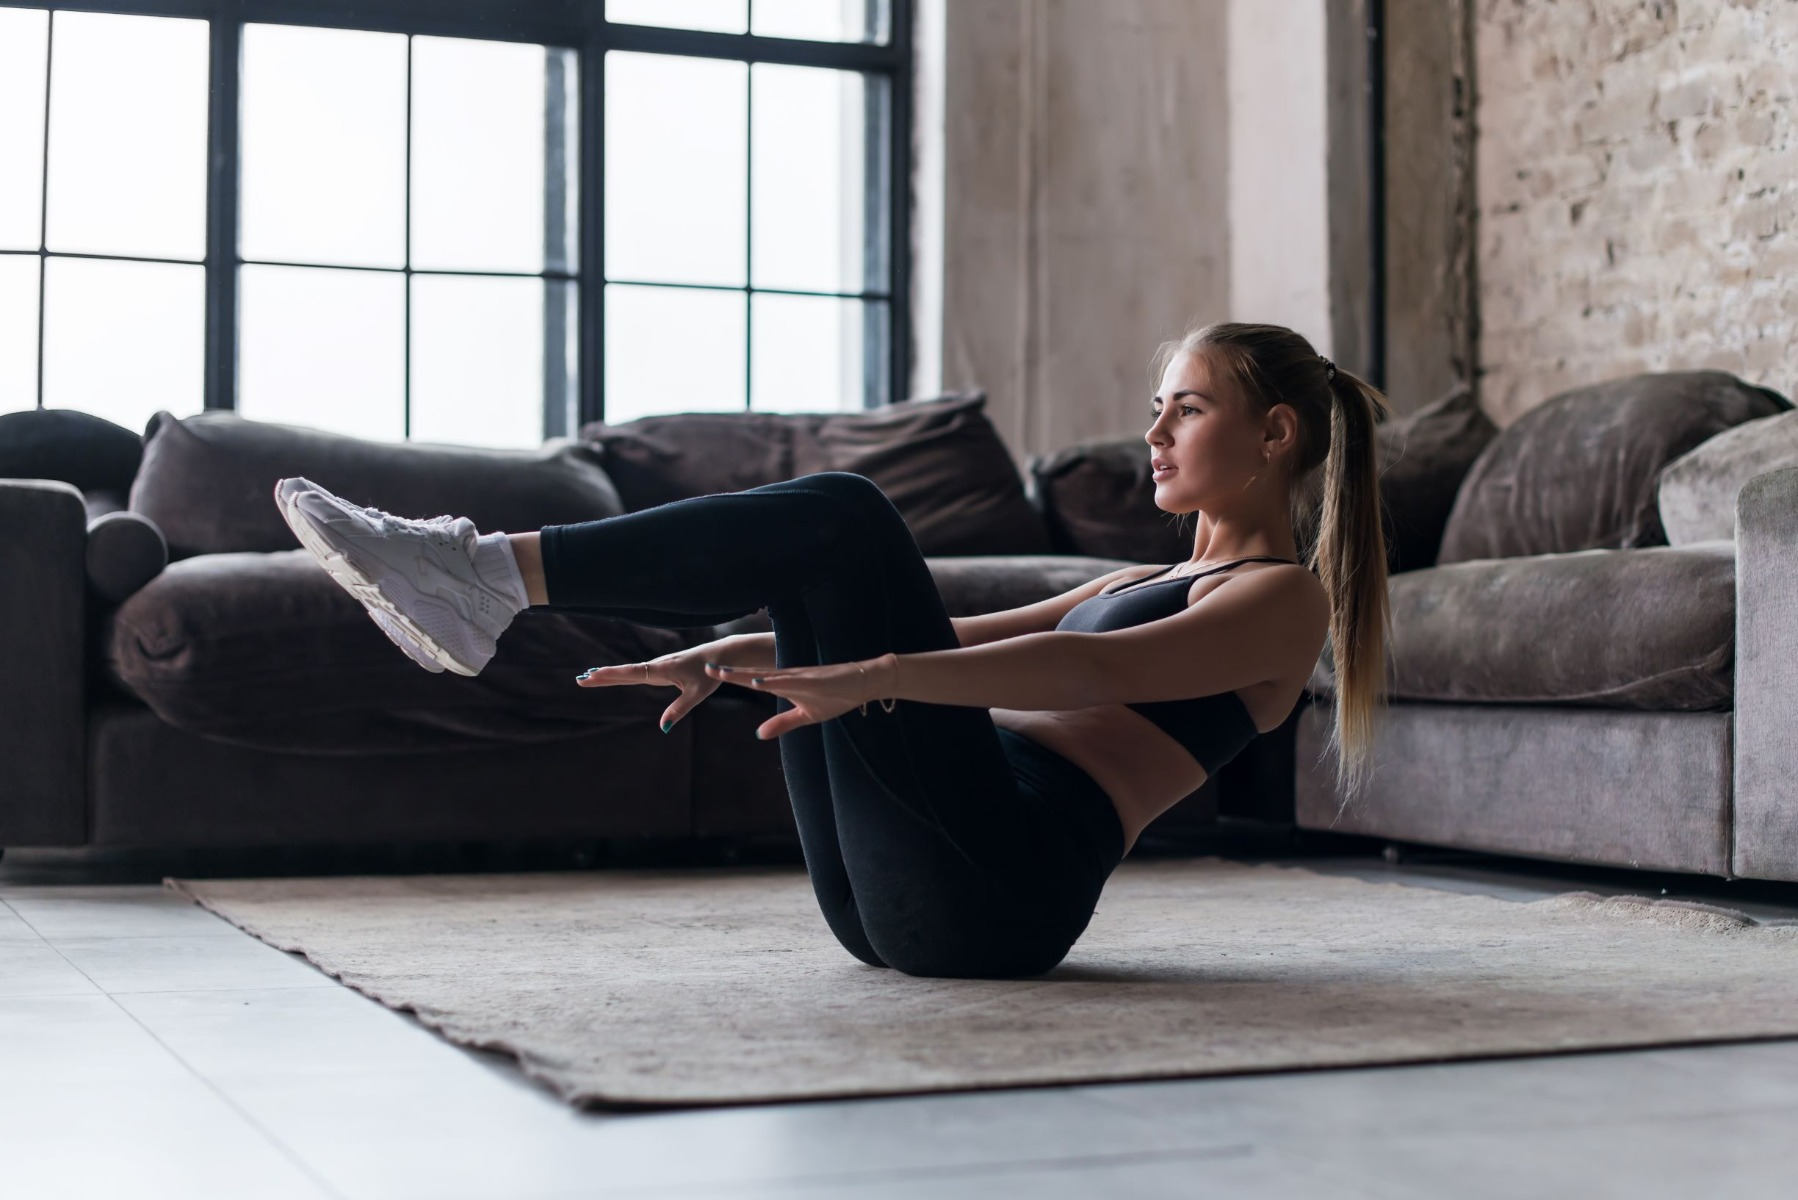 Woman on exercise mat doing V-up exercise